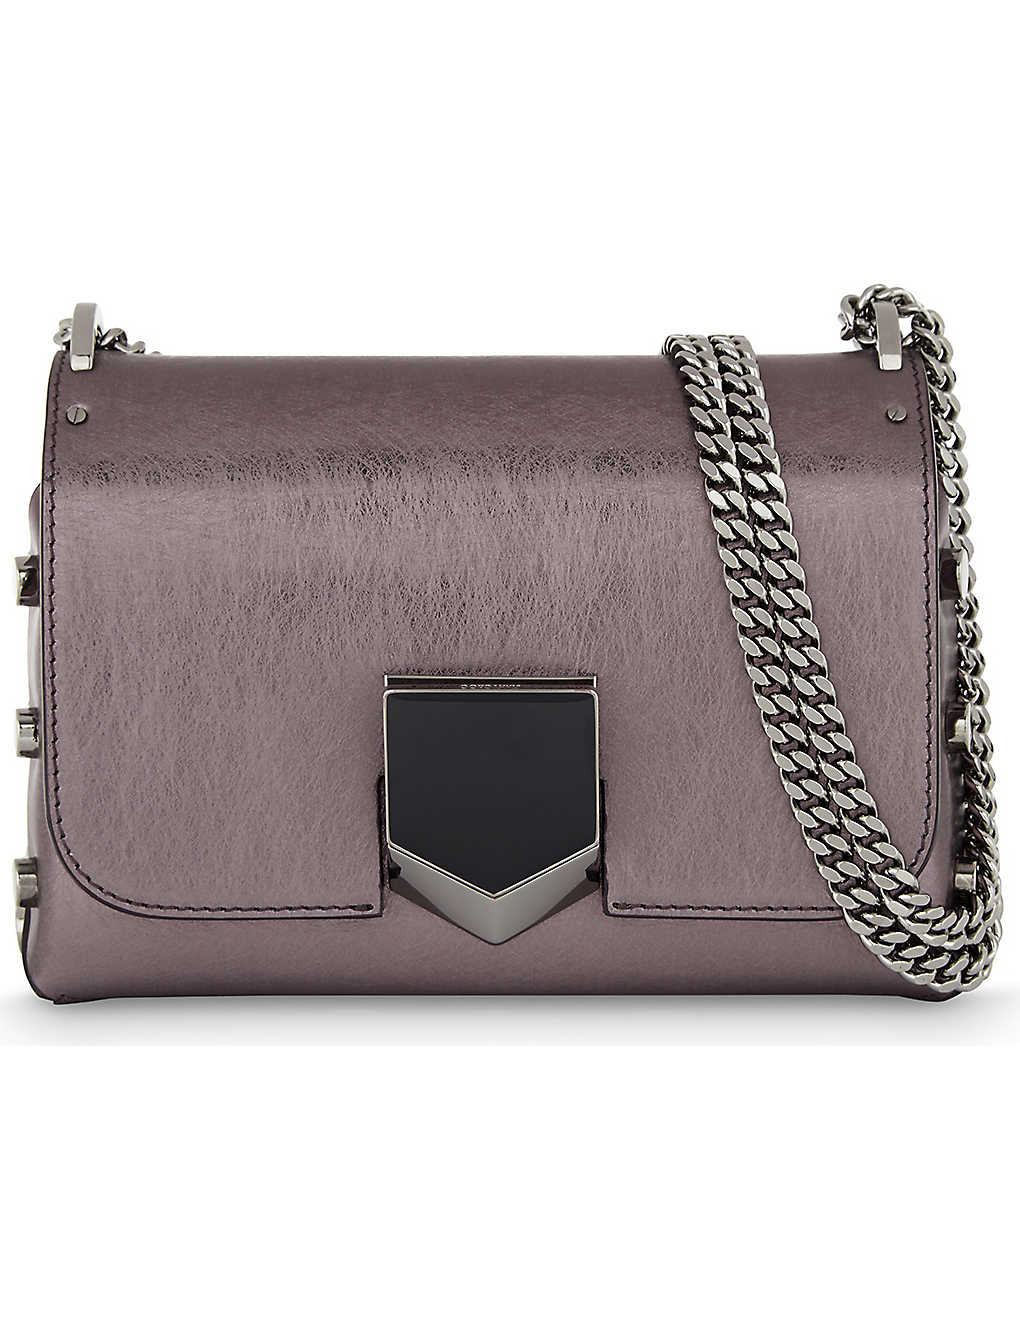 e486e66a899 JIMMY CHOO - Lockett Petite leather shoulder bag | Selfridges.com